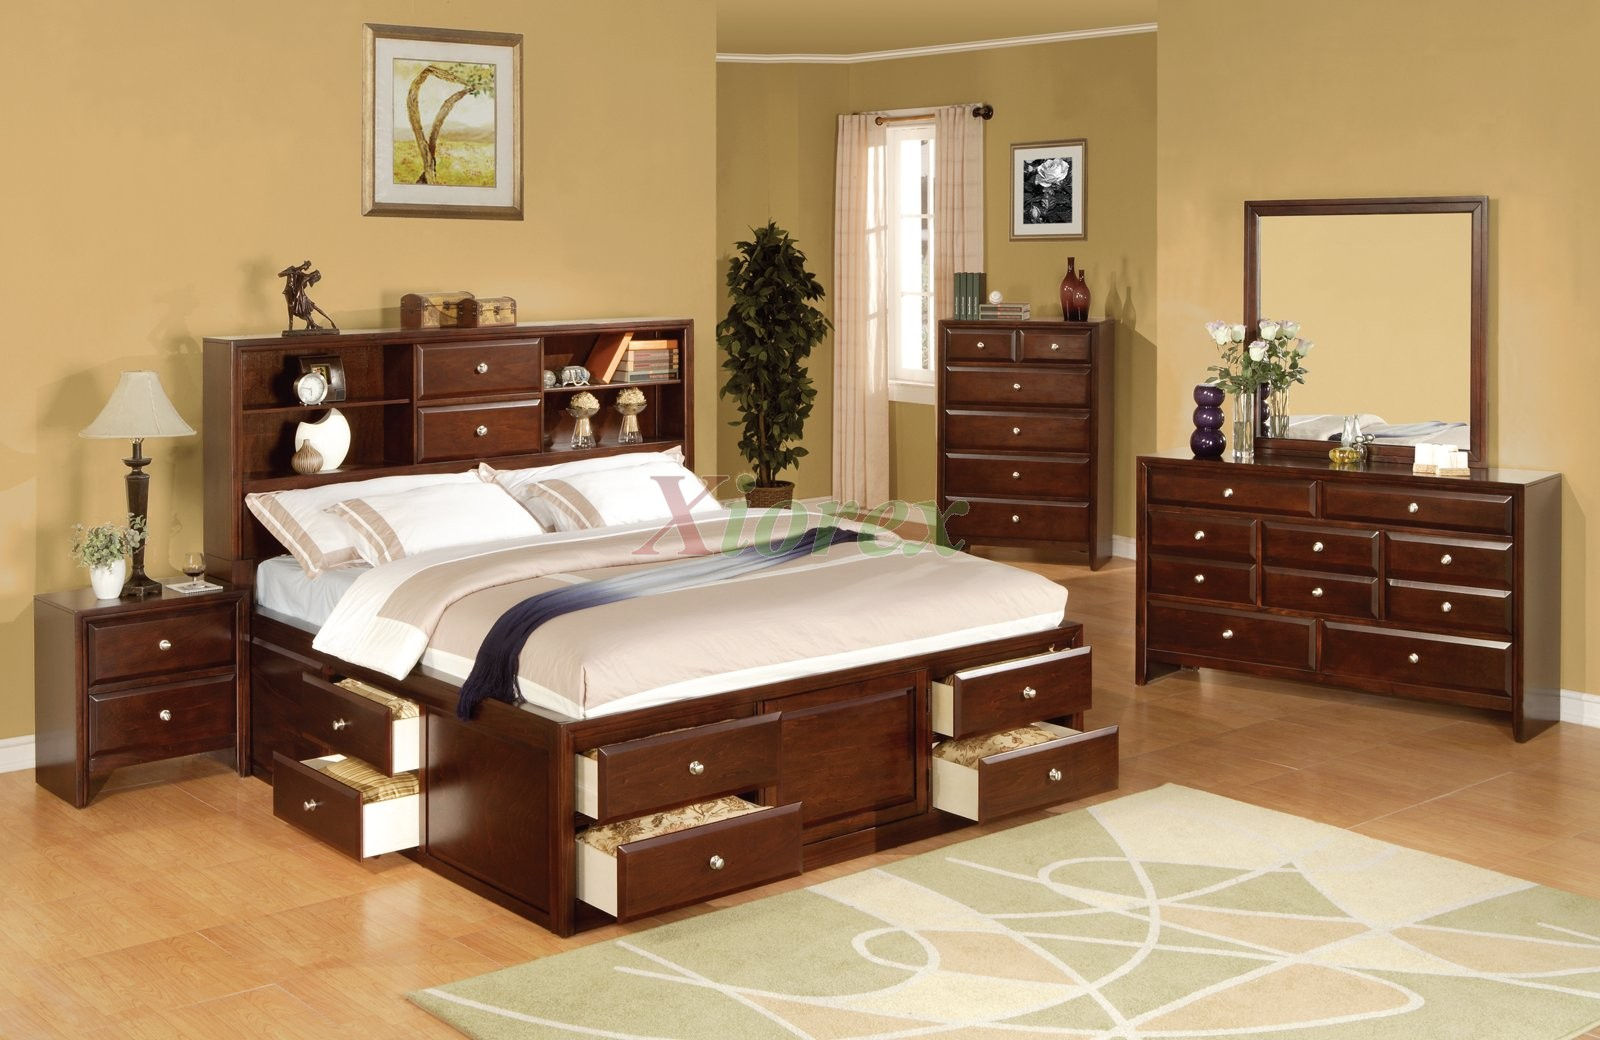 Bookcase and storage bedroom furniture set 137 xiorex for Recamaras dico 2016